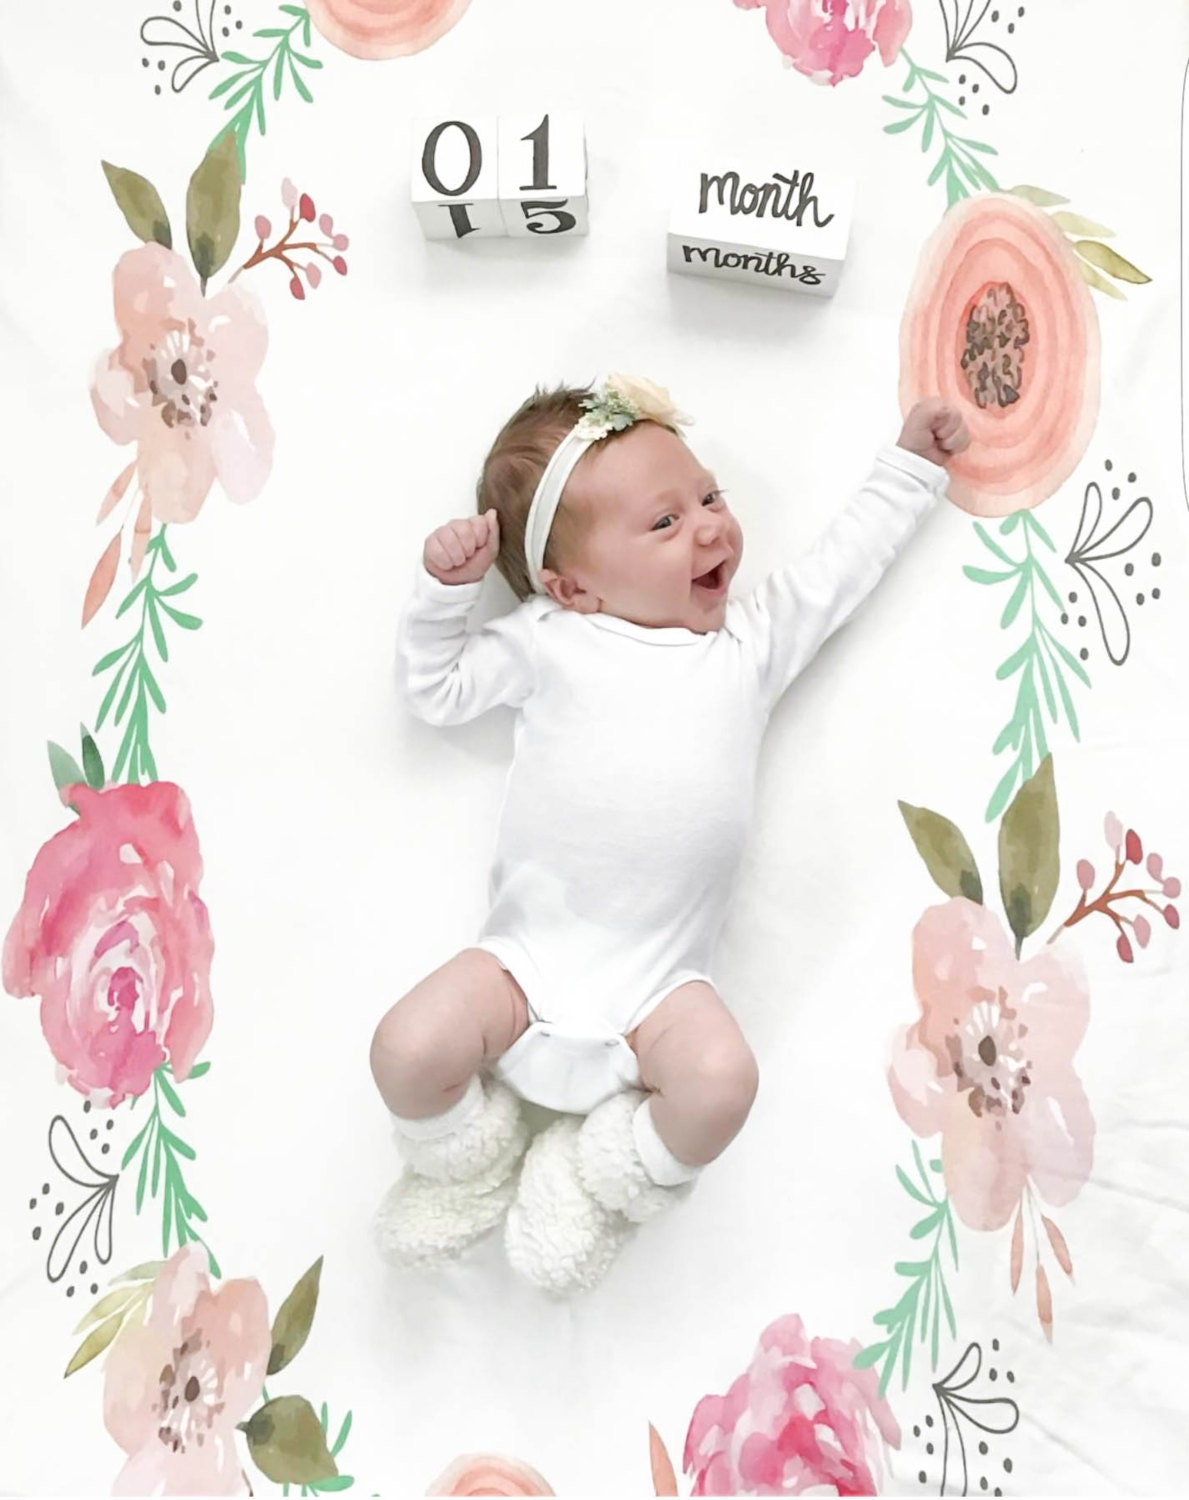 Toddler coloring milestones - Wreath Swaddle Milestone Blanket Growth Chart Newborn To 1 Year Photo Baby Photography Floral Wreath For Photos Blocks And Sticker